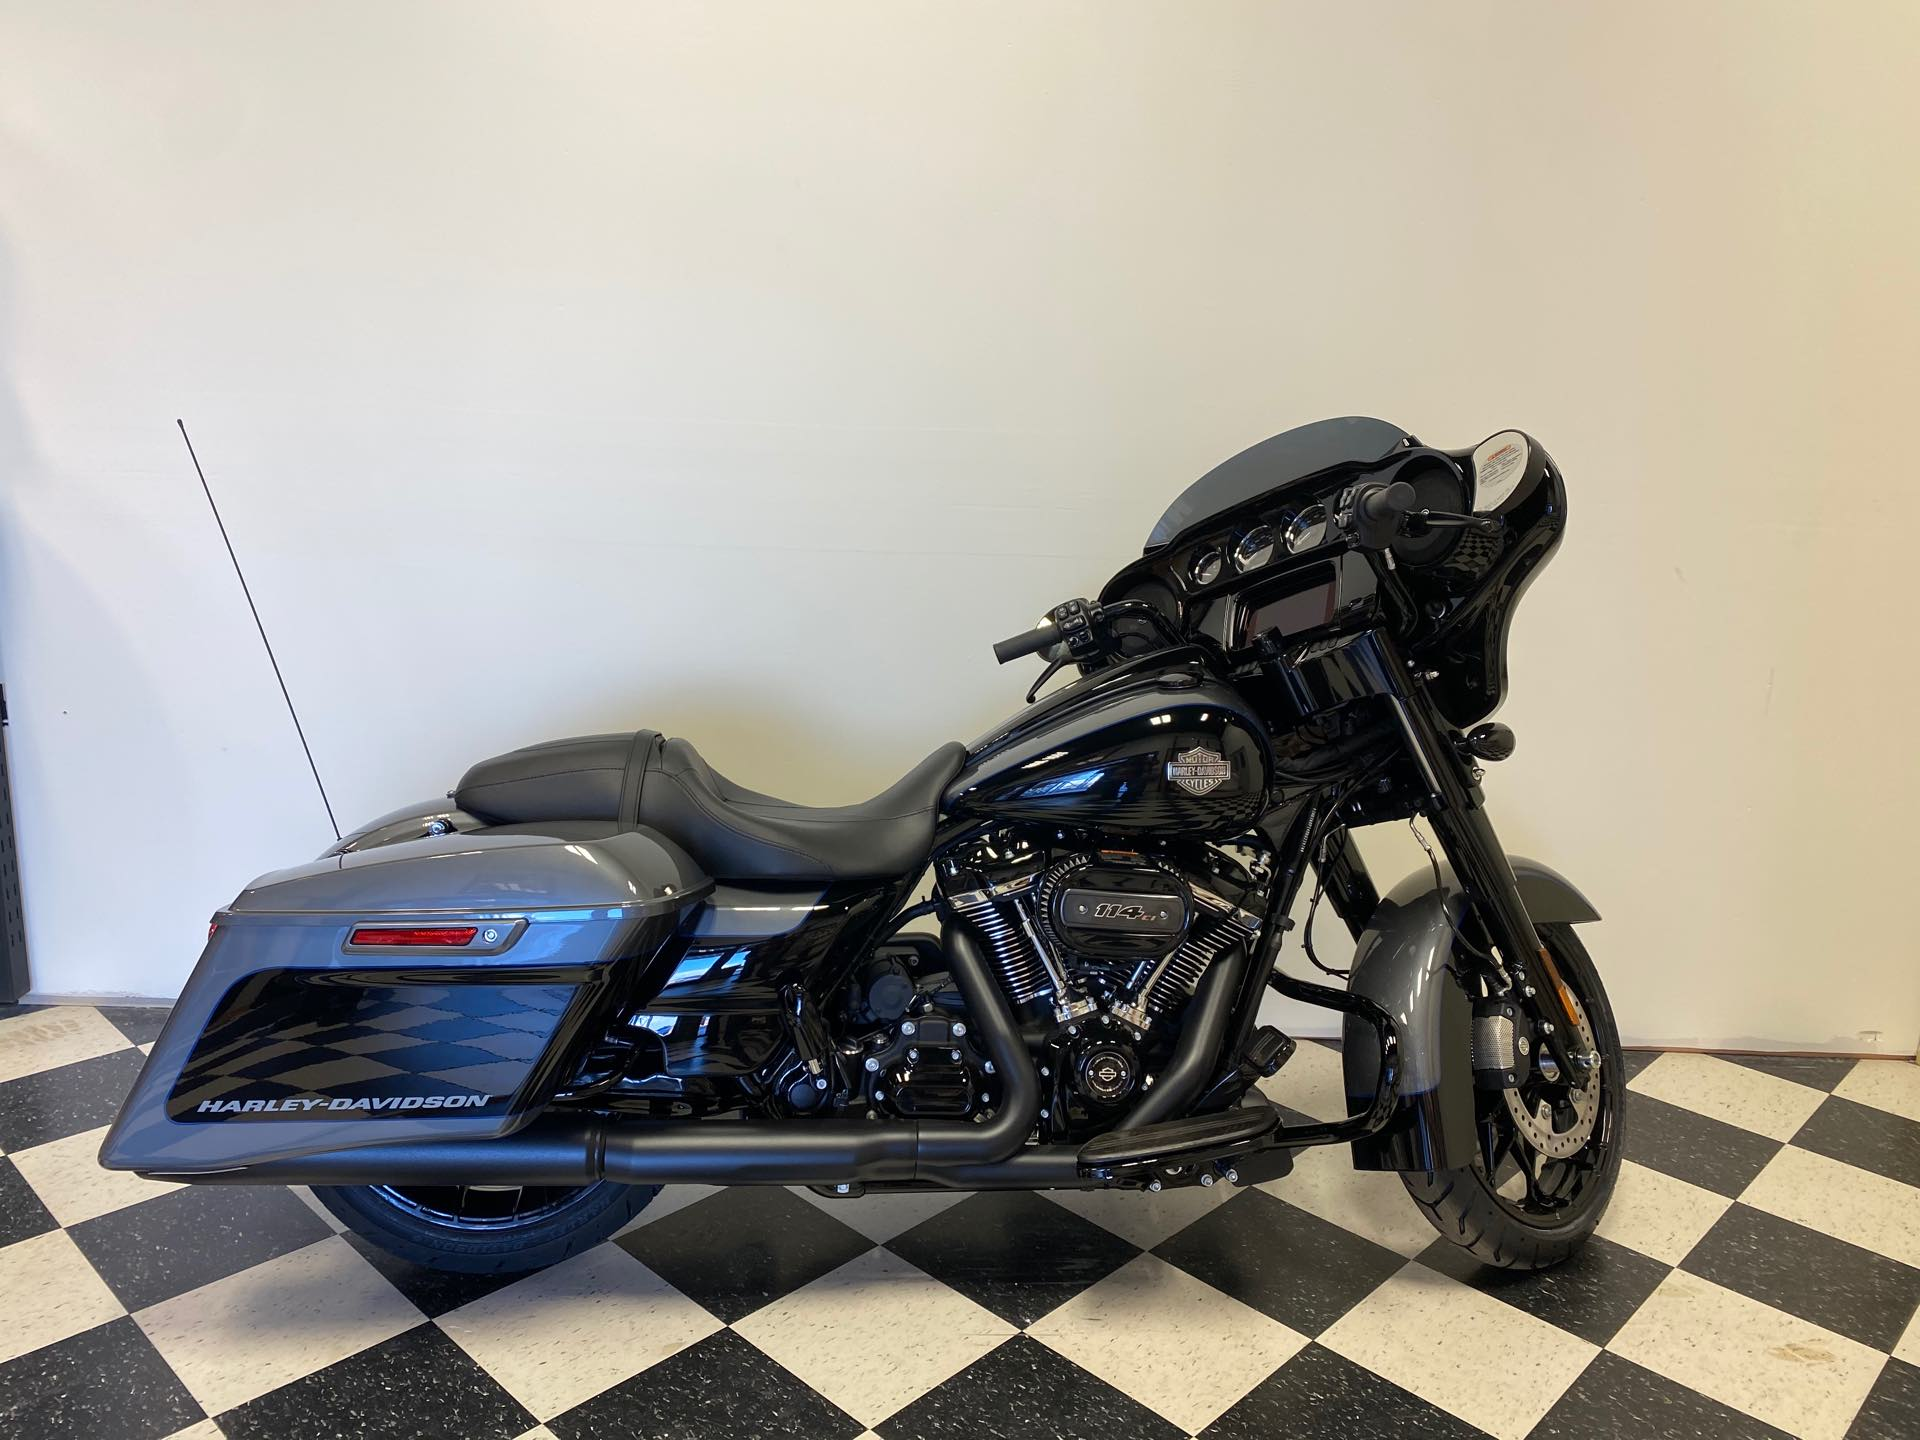 2021 Harley-Davidson Touring FLHXS Street Glide Special at Deluxe Harley Davidson